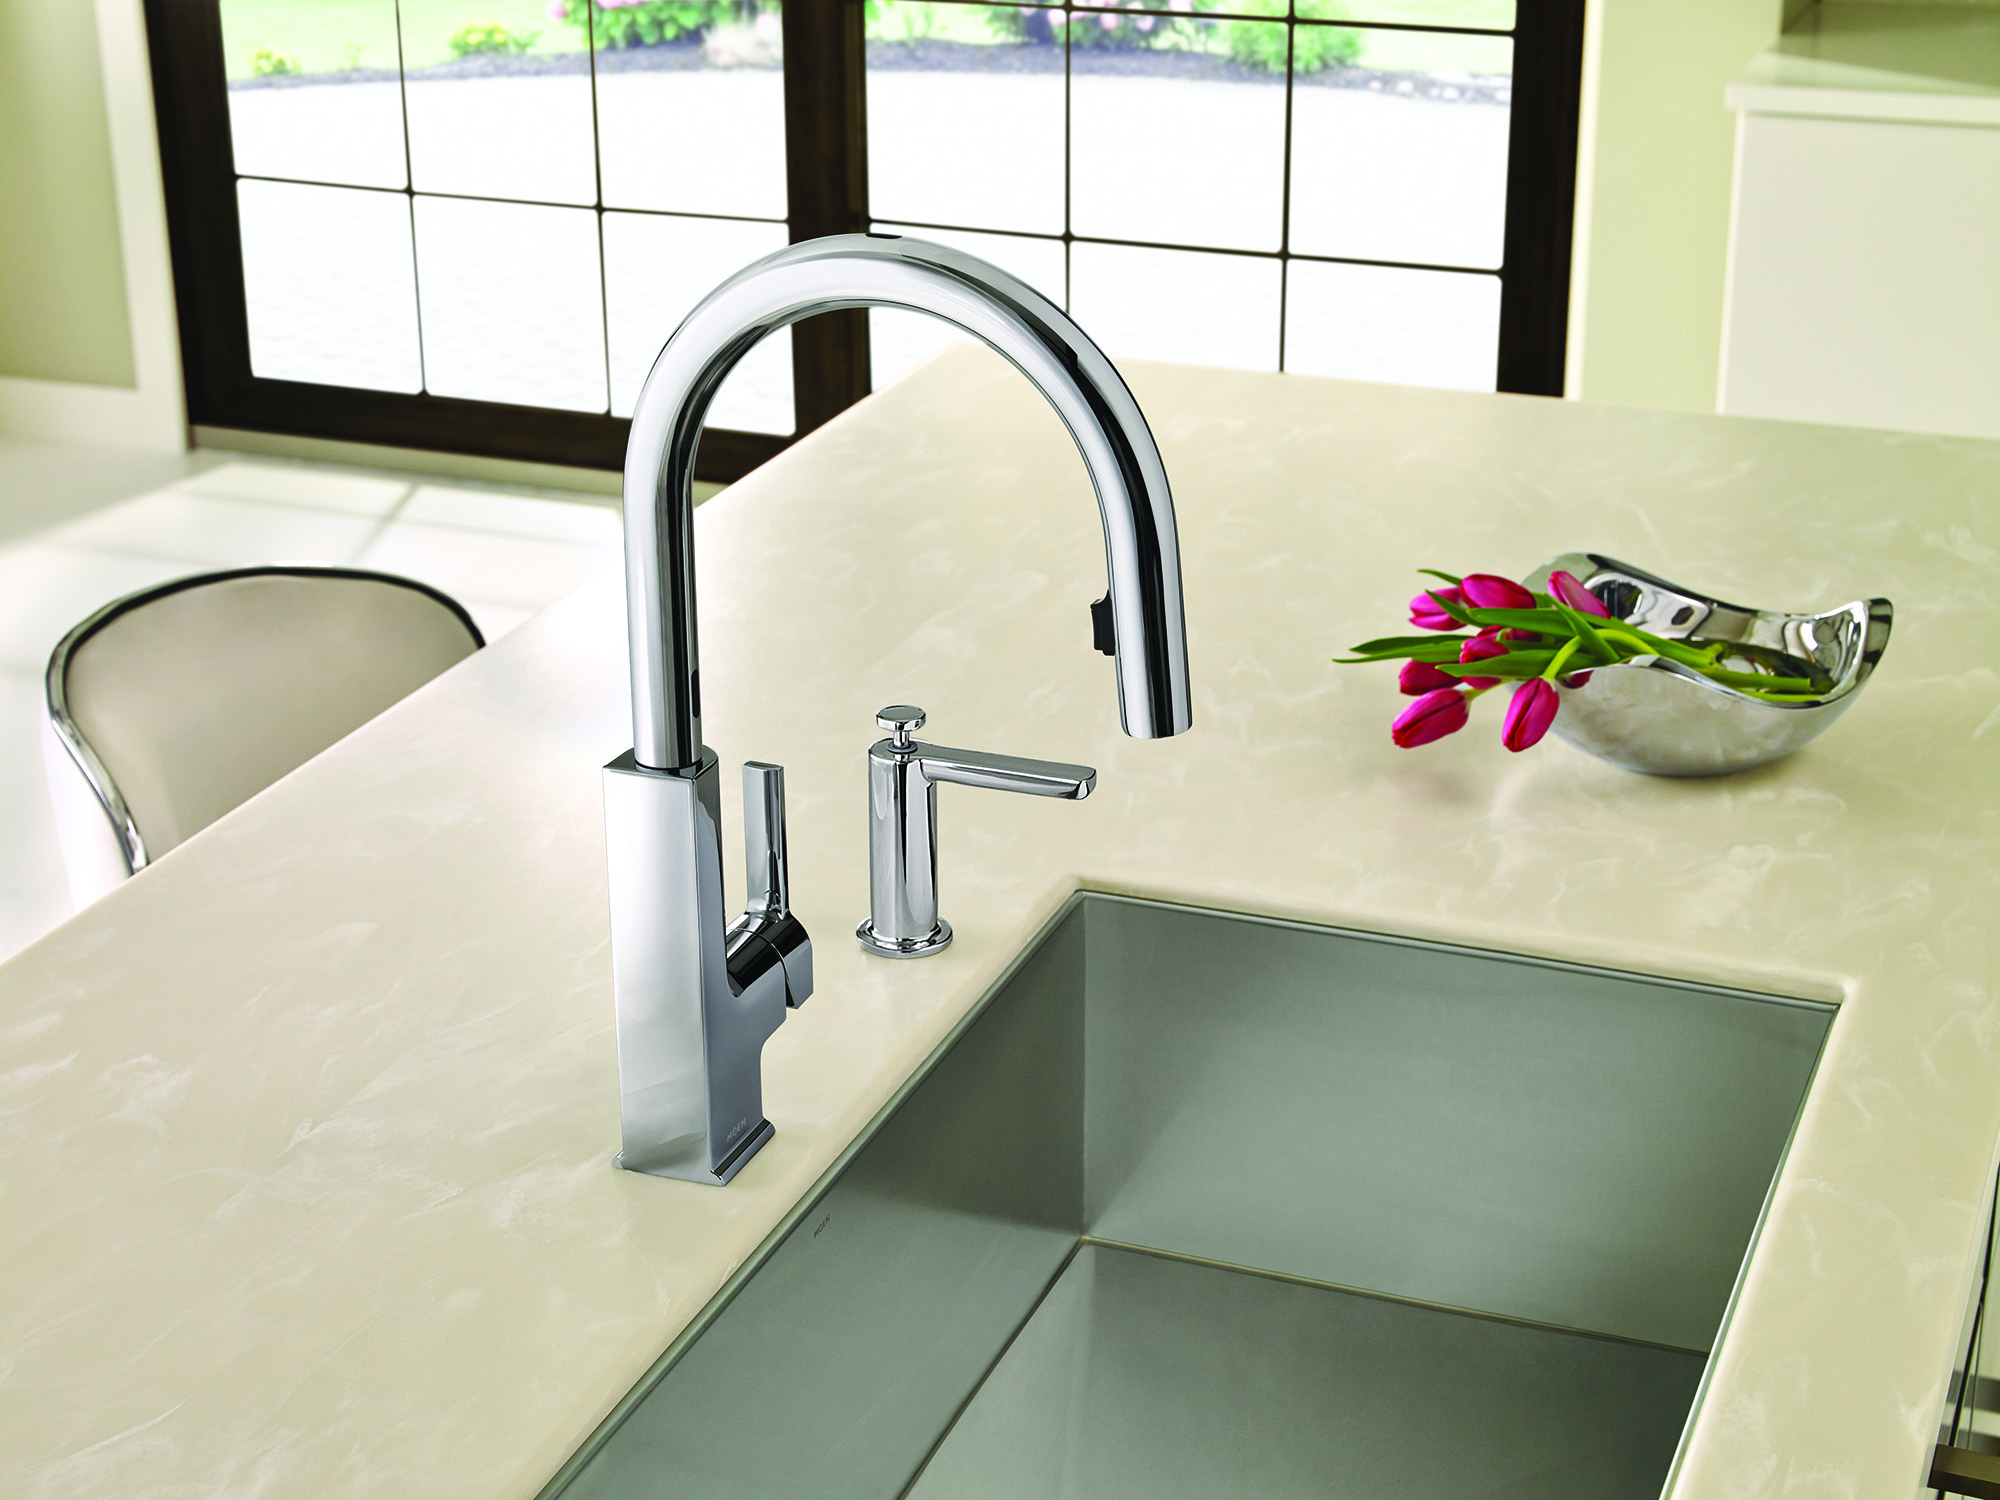 why touch your kitchen faucet when you